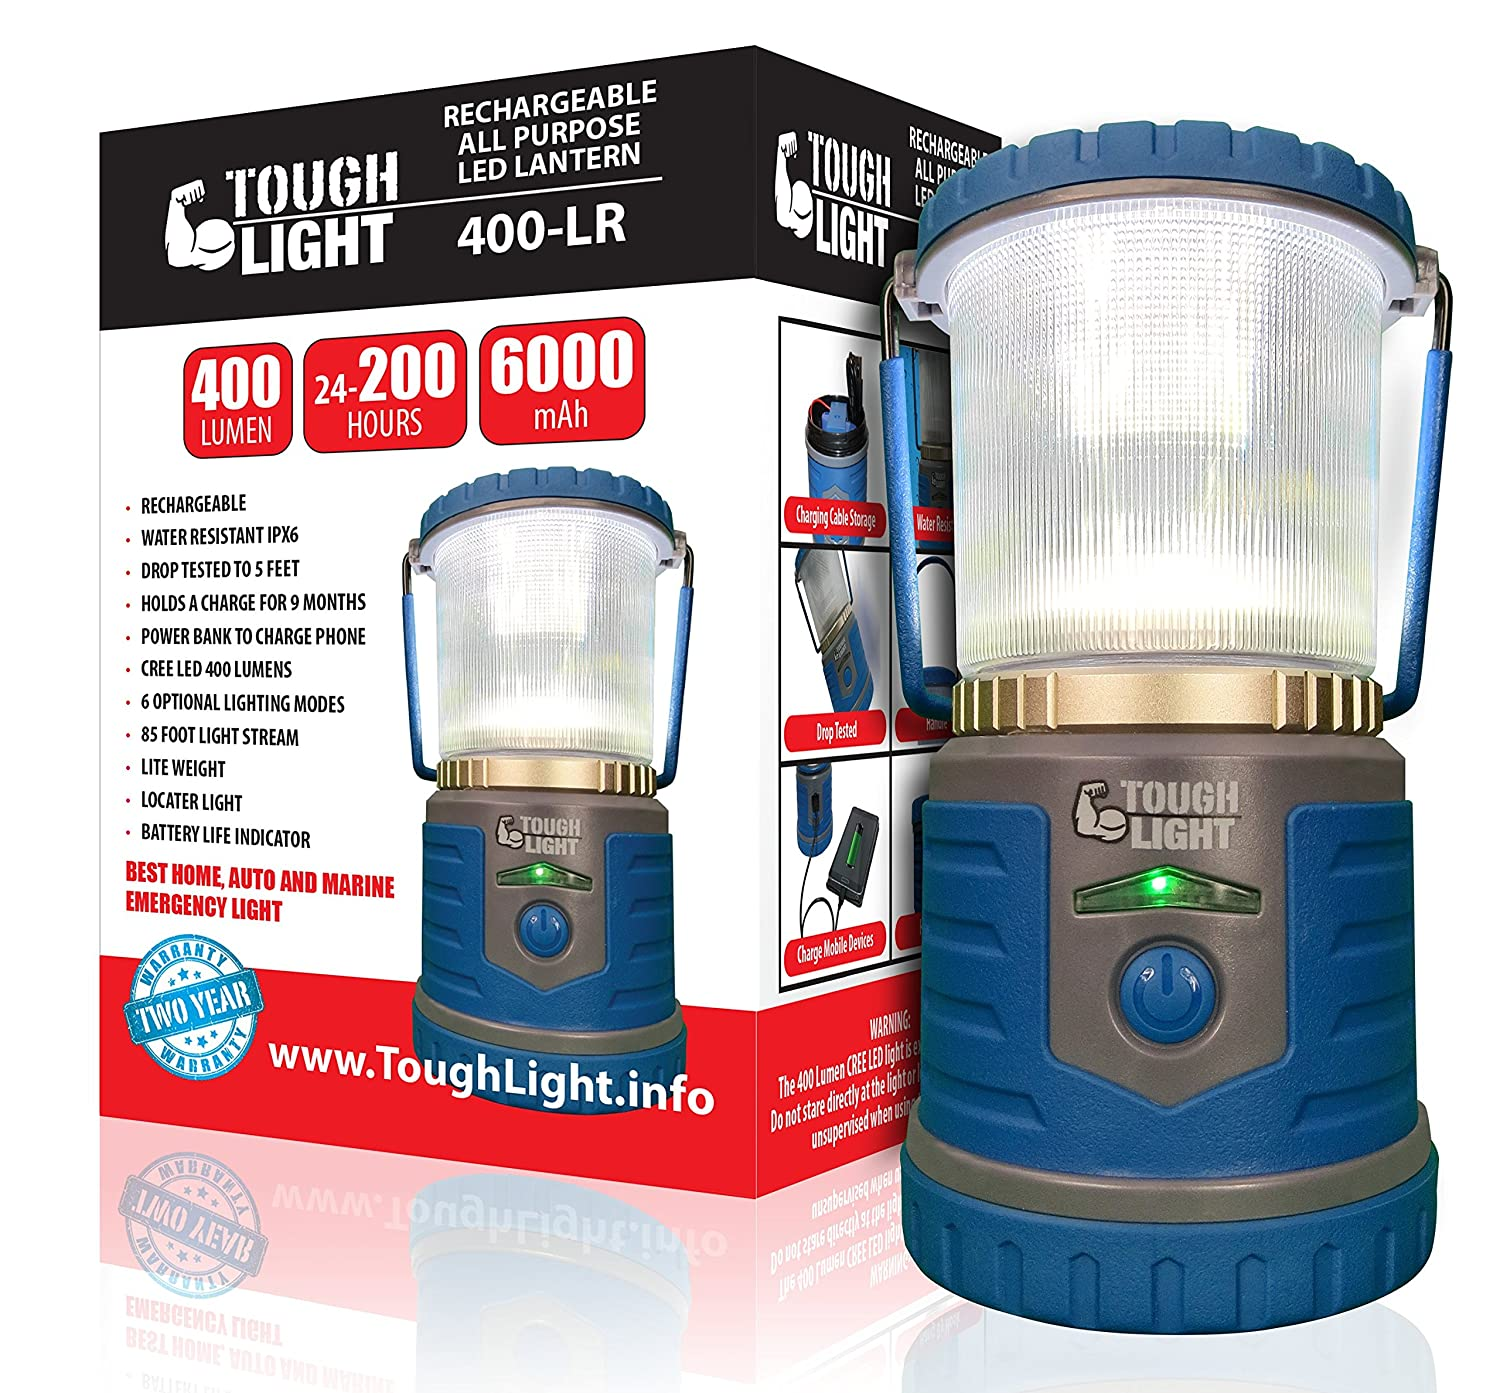 Tough Light LED Rechargeable Lantern – 200 Hours of Light from a Single Charge, Longest Lasting on Amazon Camping and Emergency Light with Cell Phone Charger – 2 Year Warranty